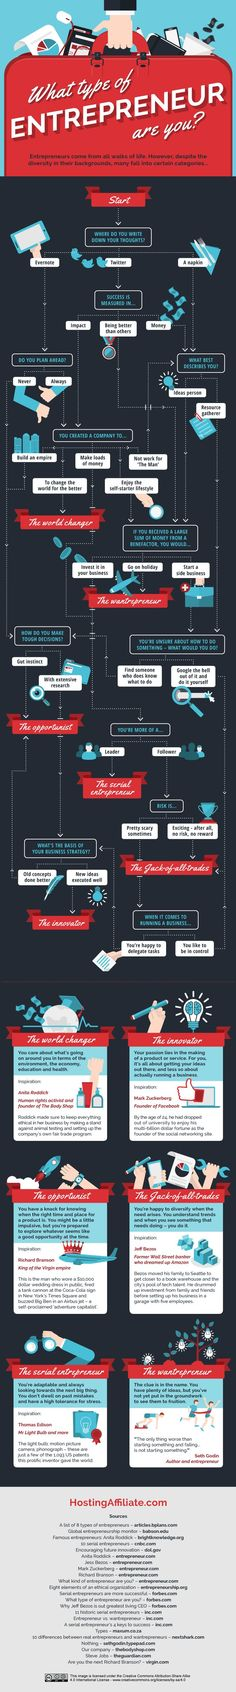 What Type of Entrepreneur Are You? #infographic #Entrepreneur #Business